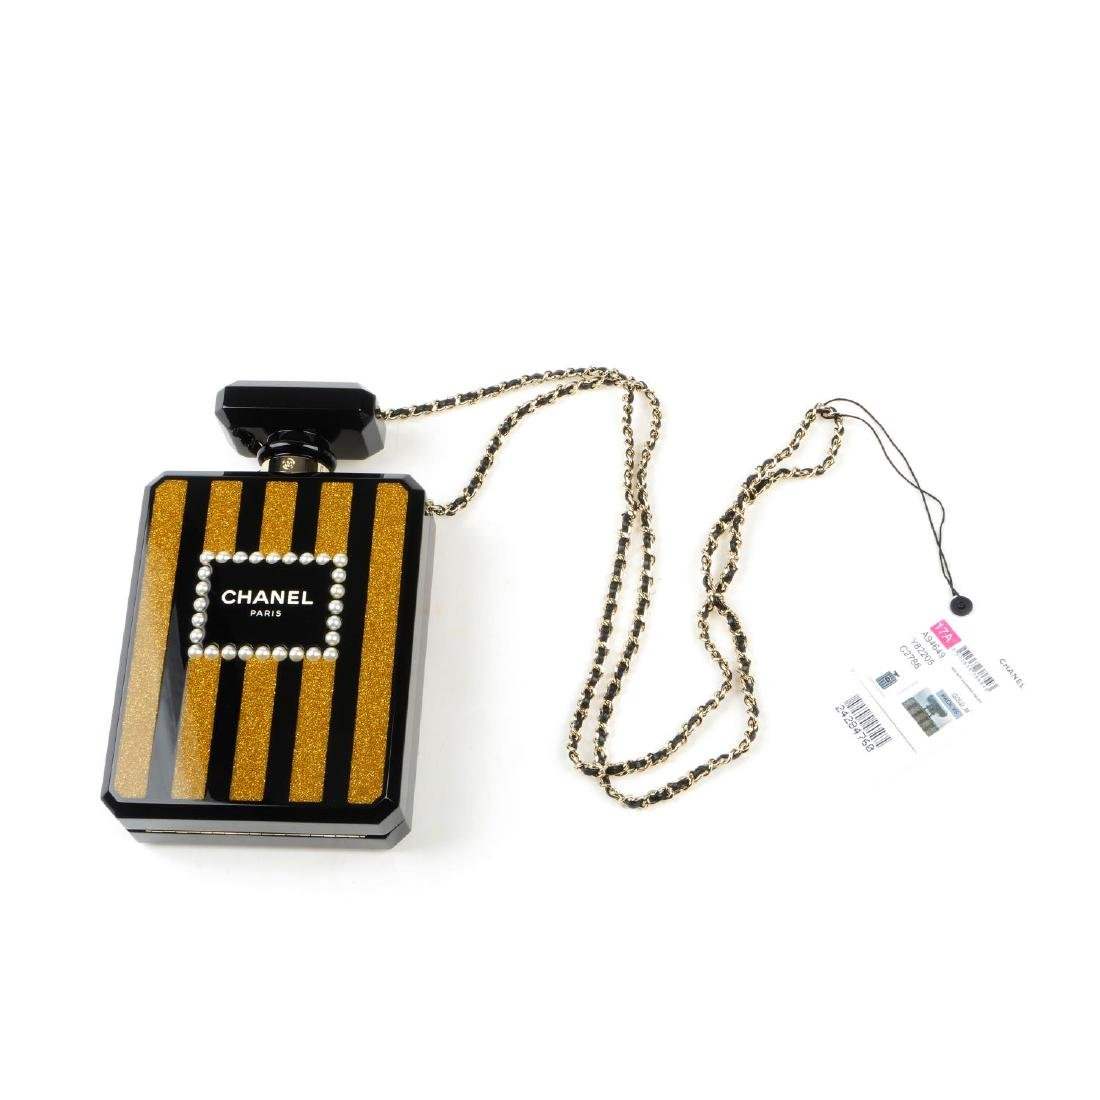 CHANEL - a Perfume Bottle Minaudière handbag. From the - 7